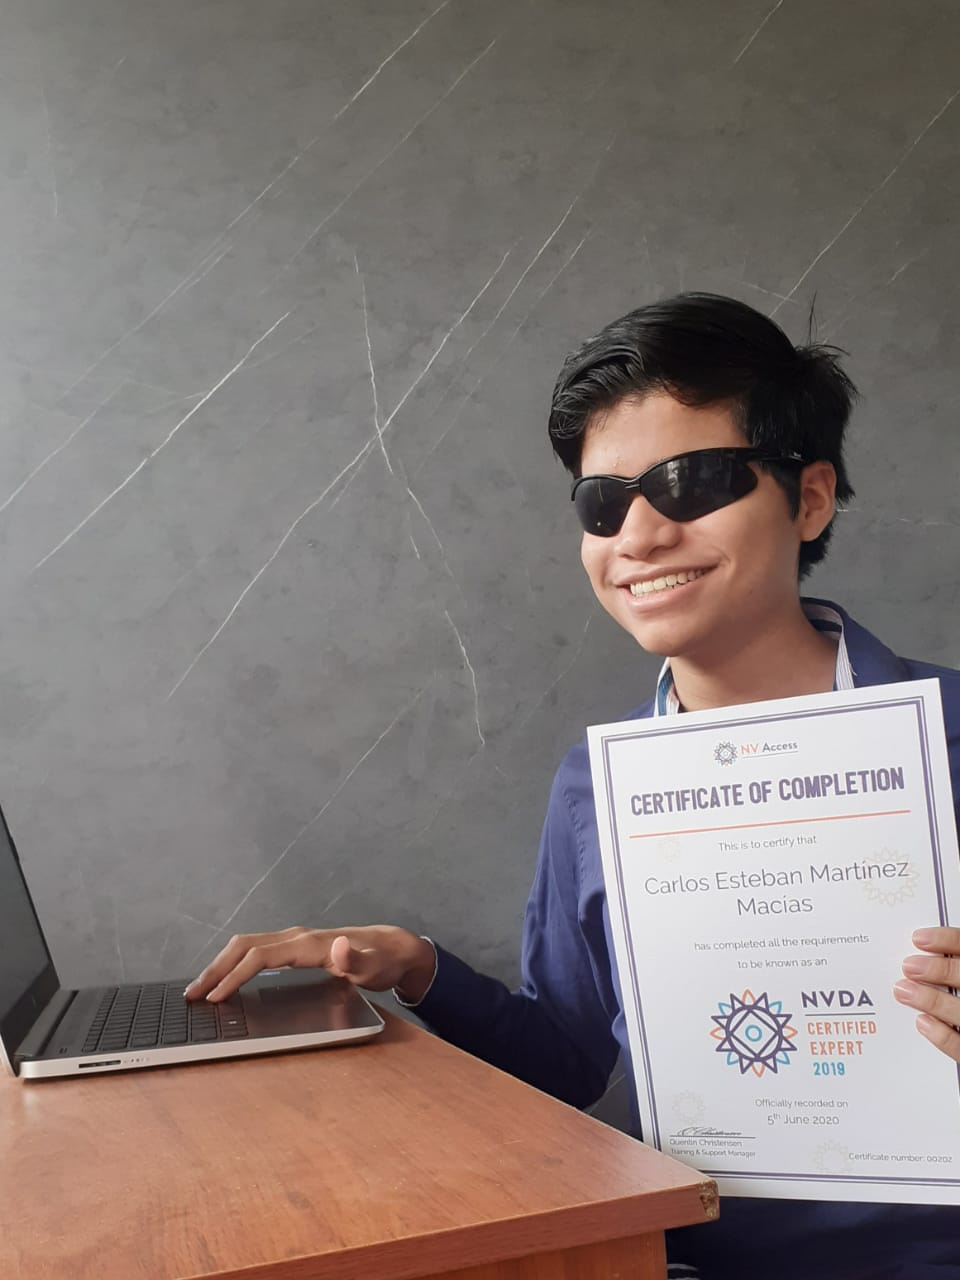 Carlos Esteban Martínez Macías holding his NVDA Certified Expert Certificate and with his hand on PC keyboard